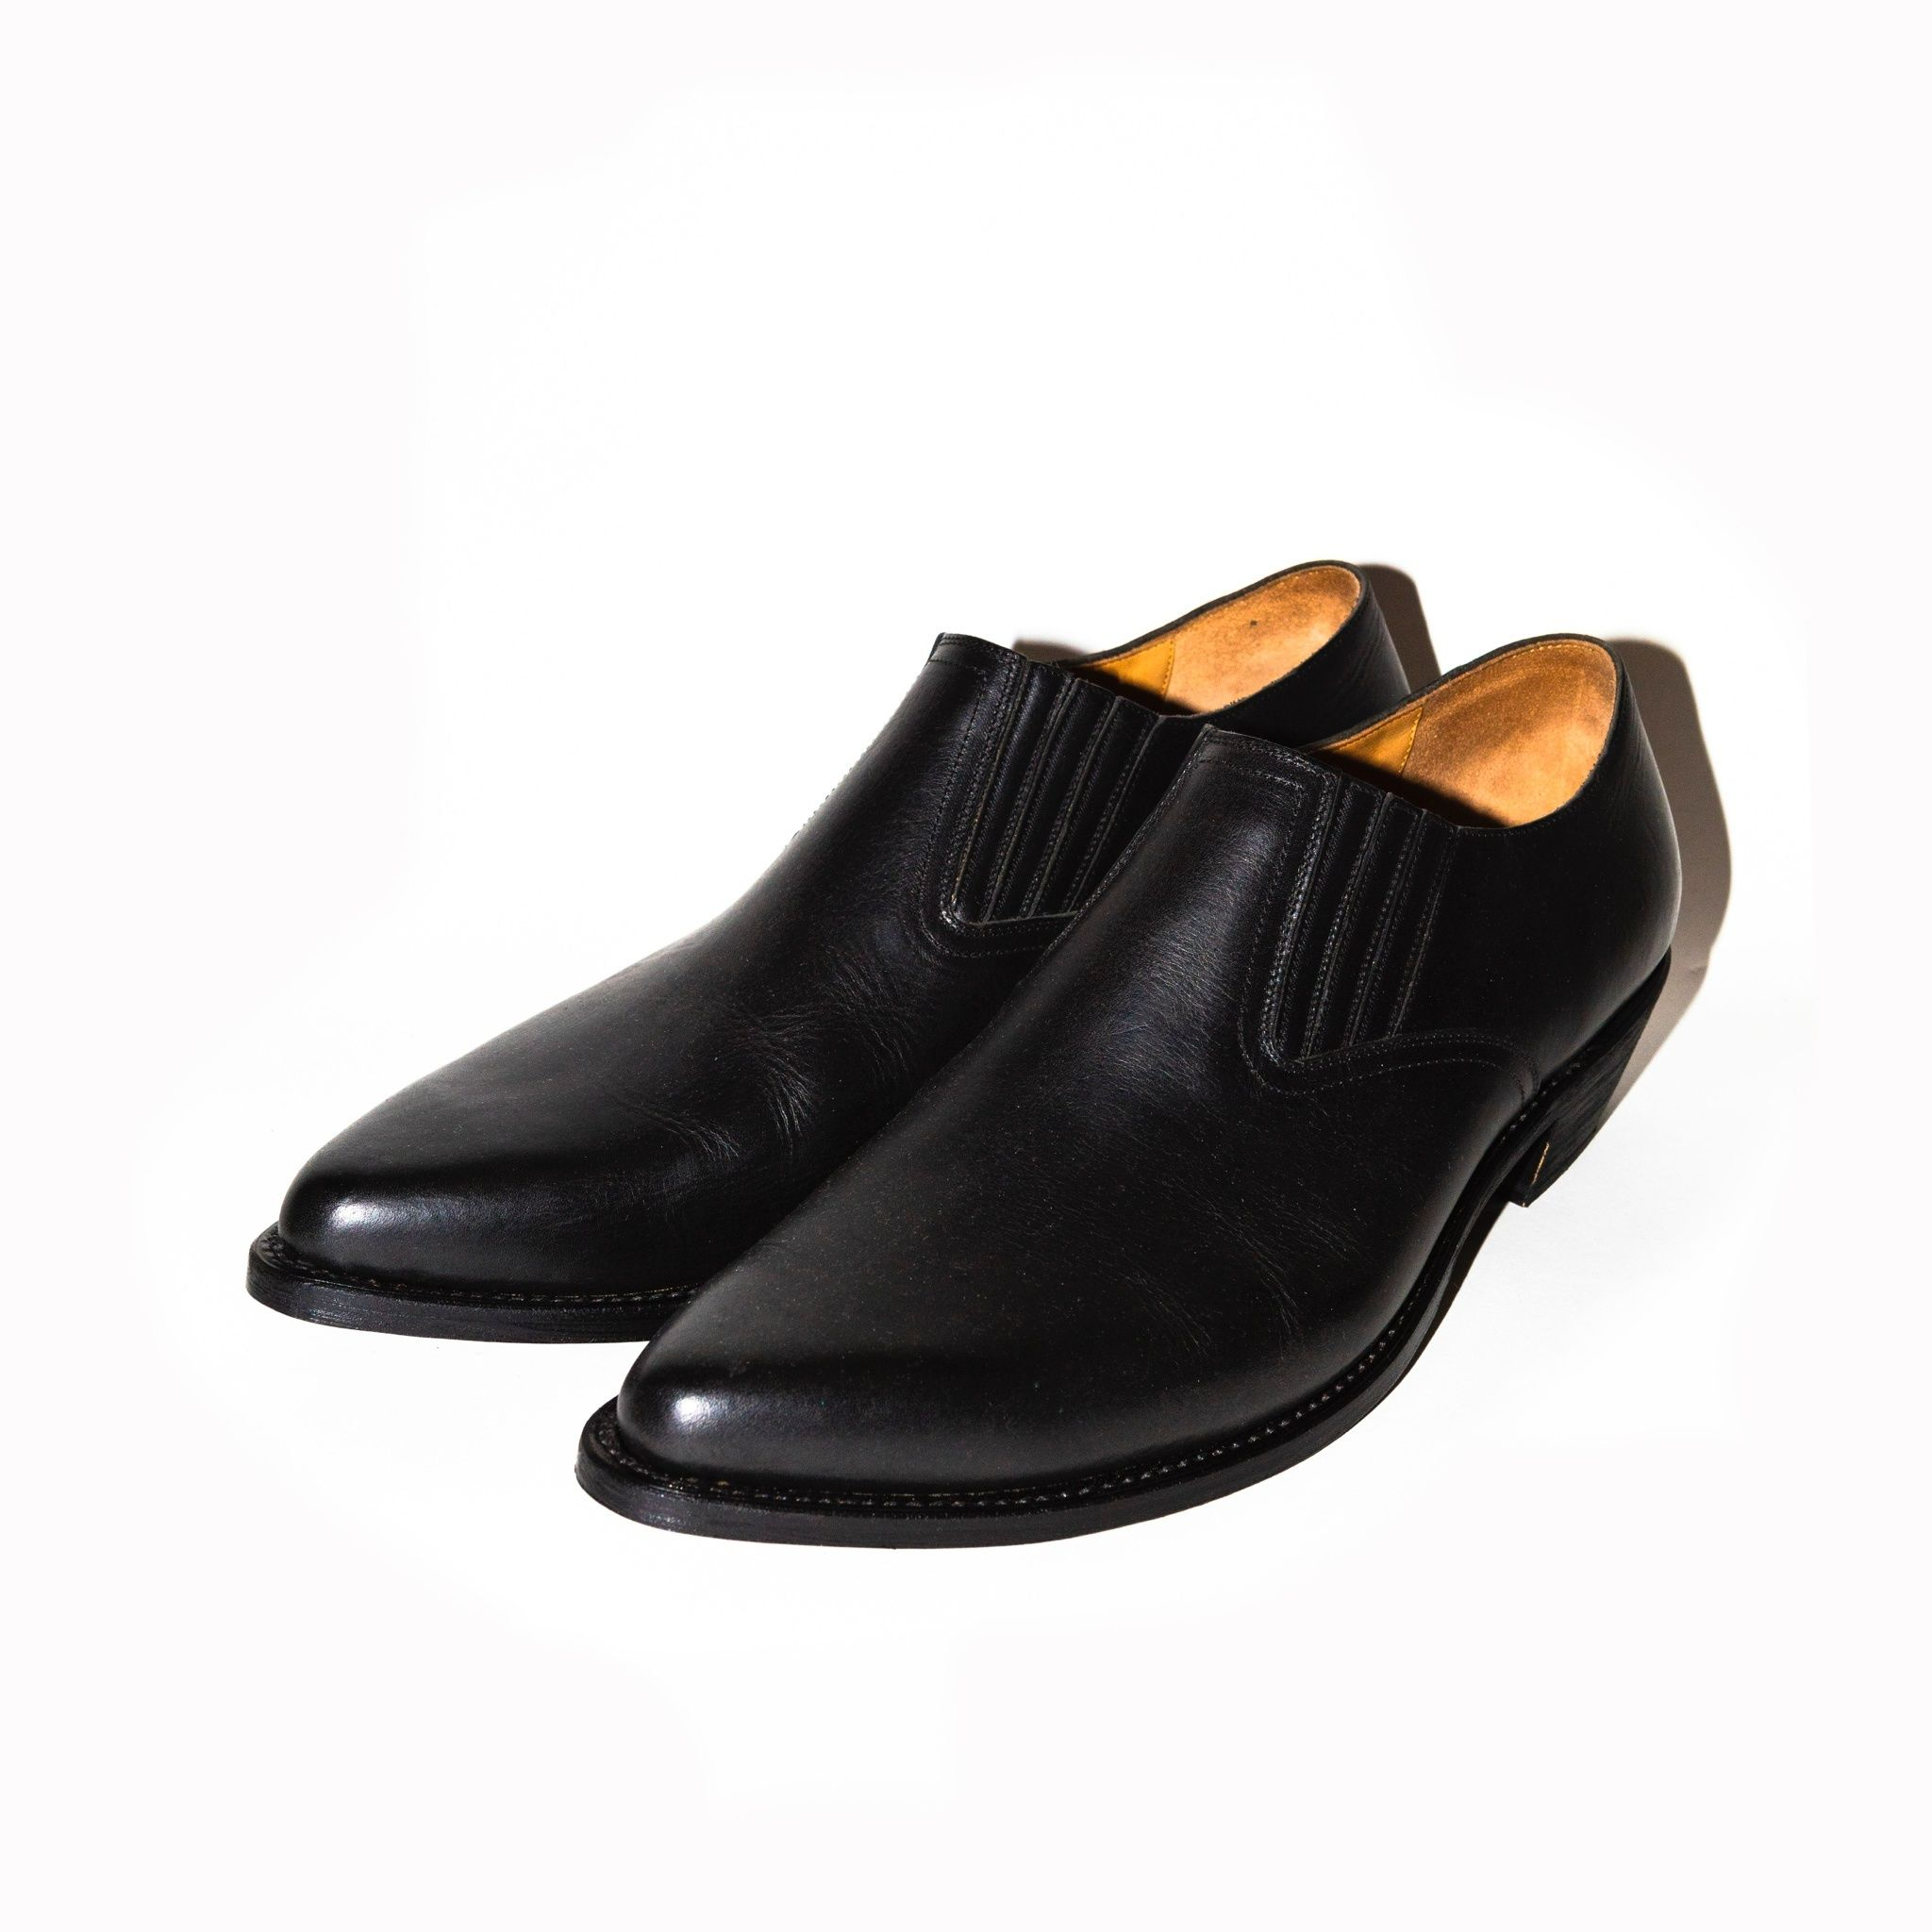 Western Pointed Sidegore Shoes. -Cow Hide-